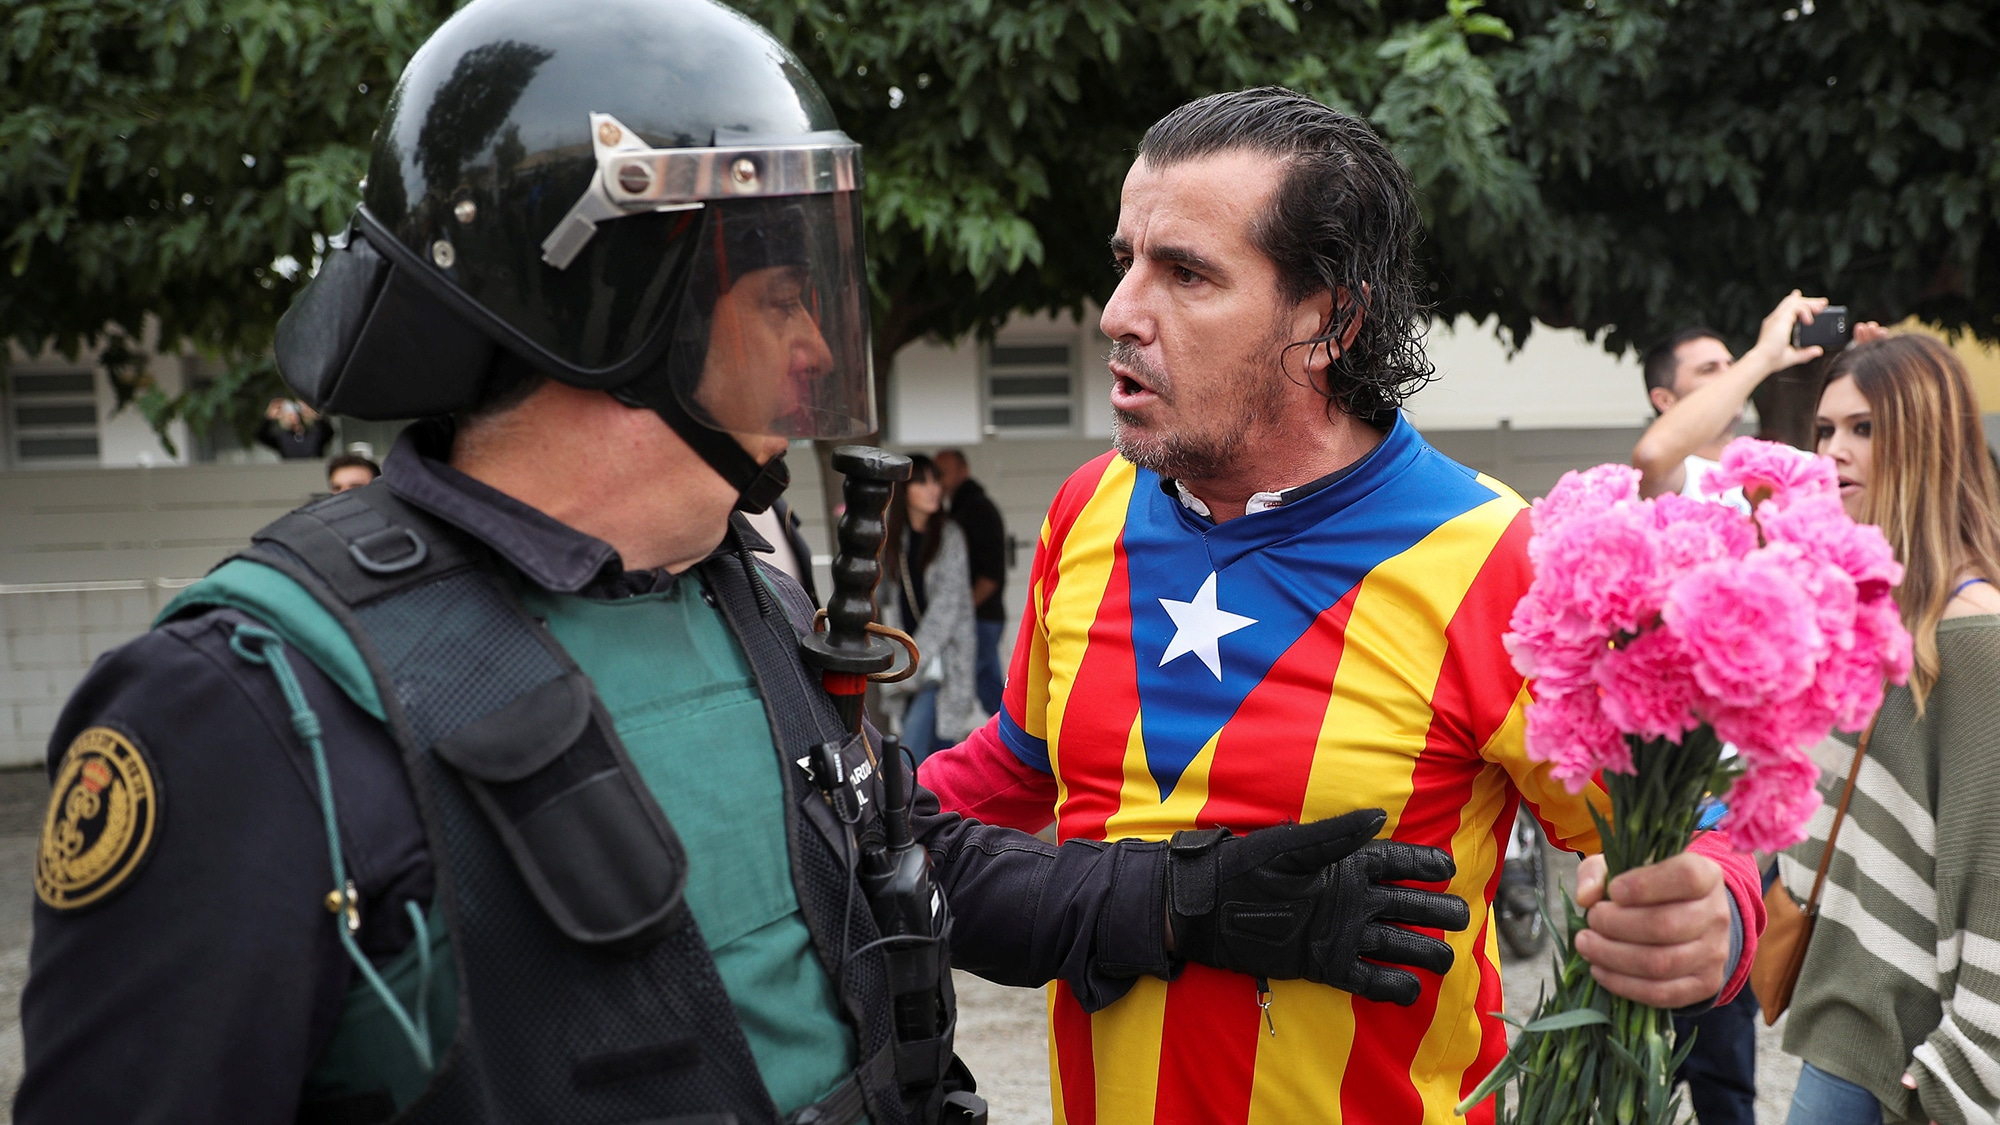 A man wearing a shirt with an Estelada (Catalan separatist flag) and holding carnations faces off with a Spanish Civil Guard